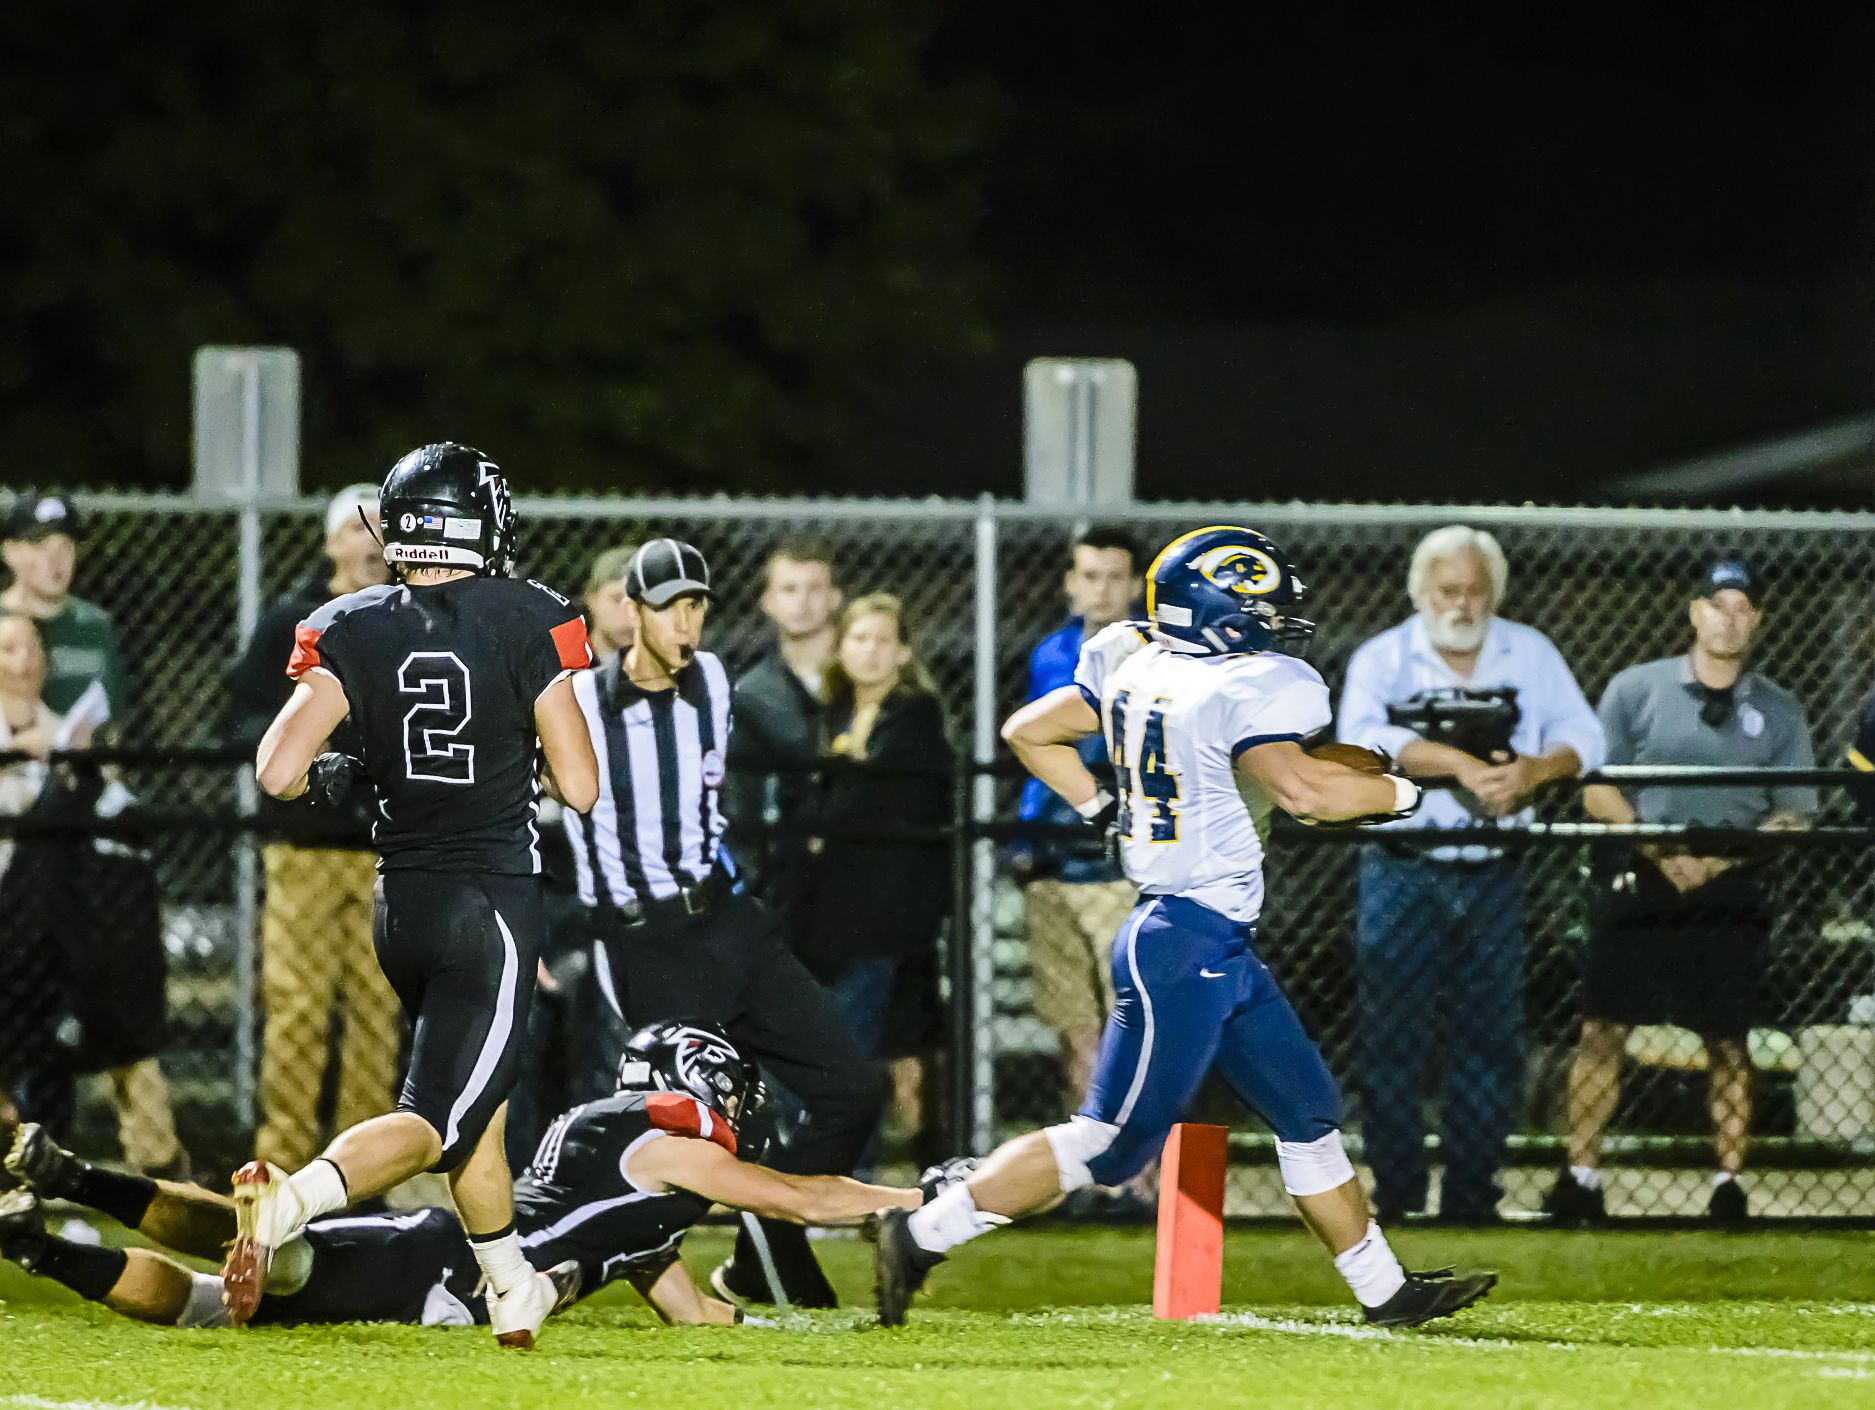 David Locher ,right, of DeWitt outruns Joey Kratzer ,bottom, of St. Johns for a touchdown midway through the 3rd quarter of their game Friday October 7, 2016 in St. Johns. The 1st down run from scrimmage put DeWitt up 18-7. KEVIN W. FOWLER PHOTO